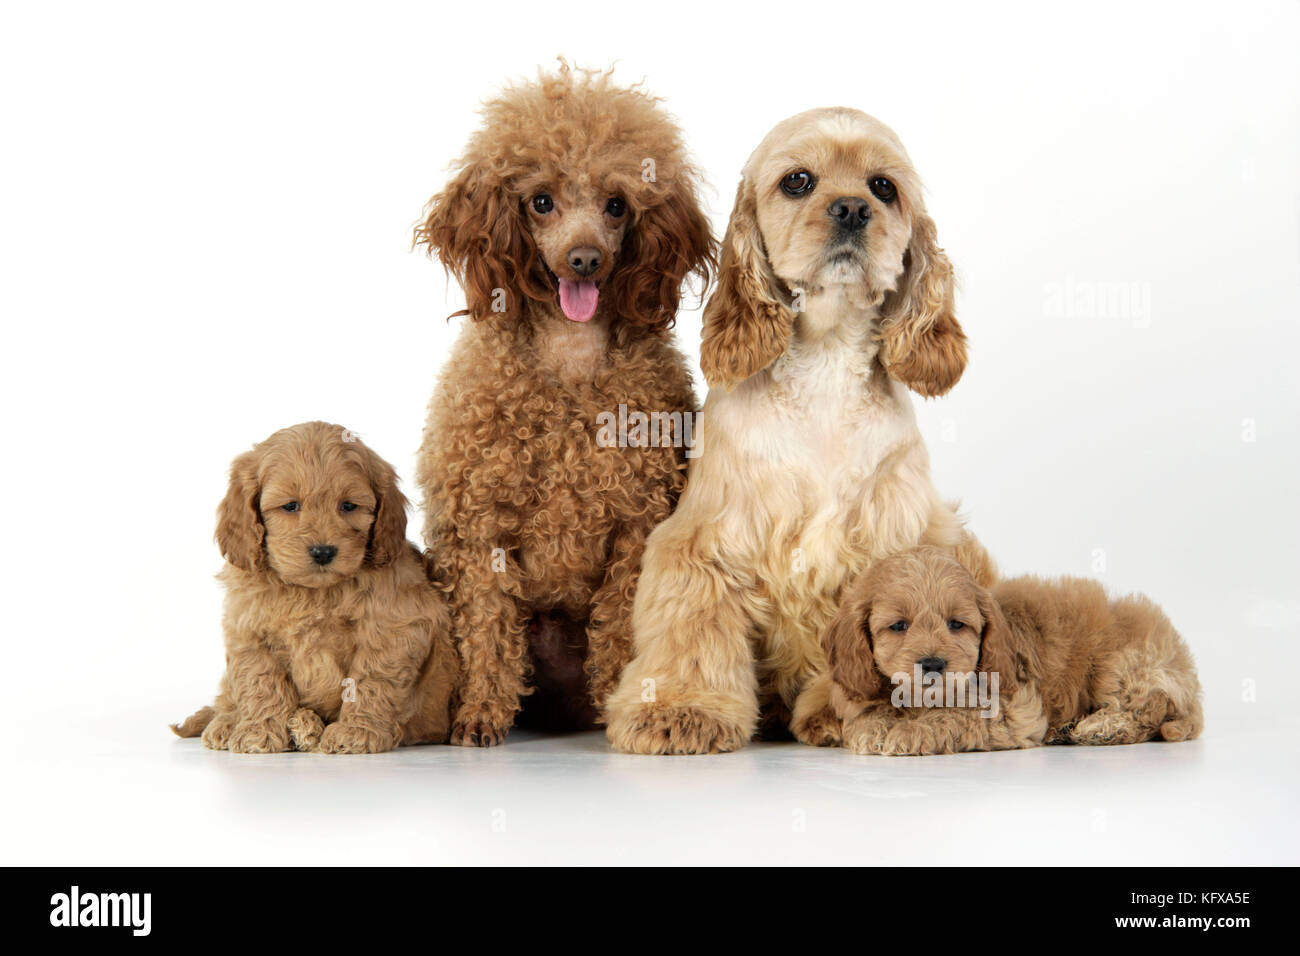 Dog. Cockerpoo puppies (7 weeks old) with parents - Stock Image